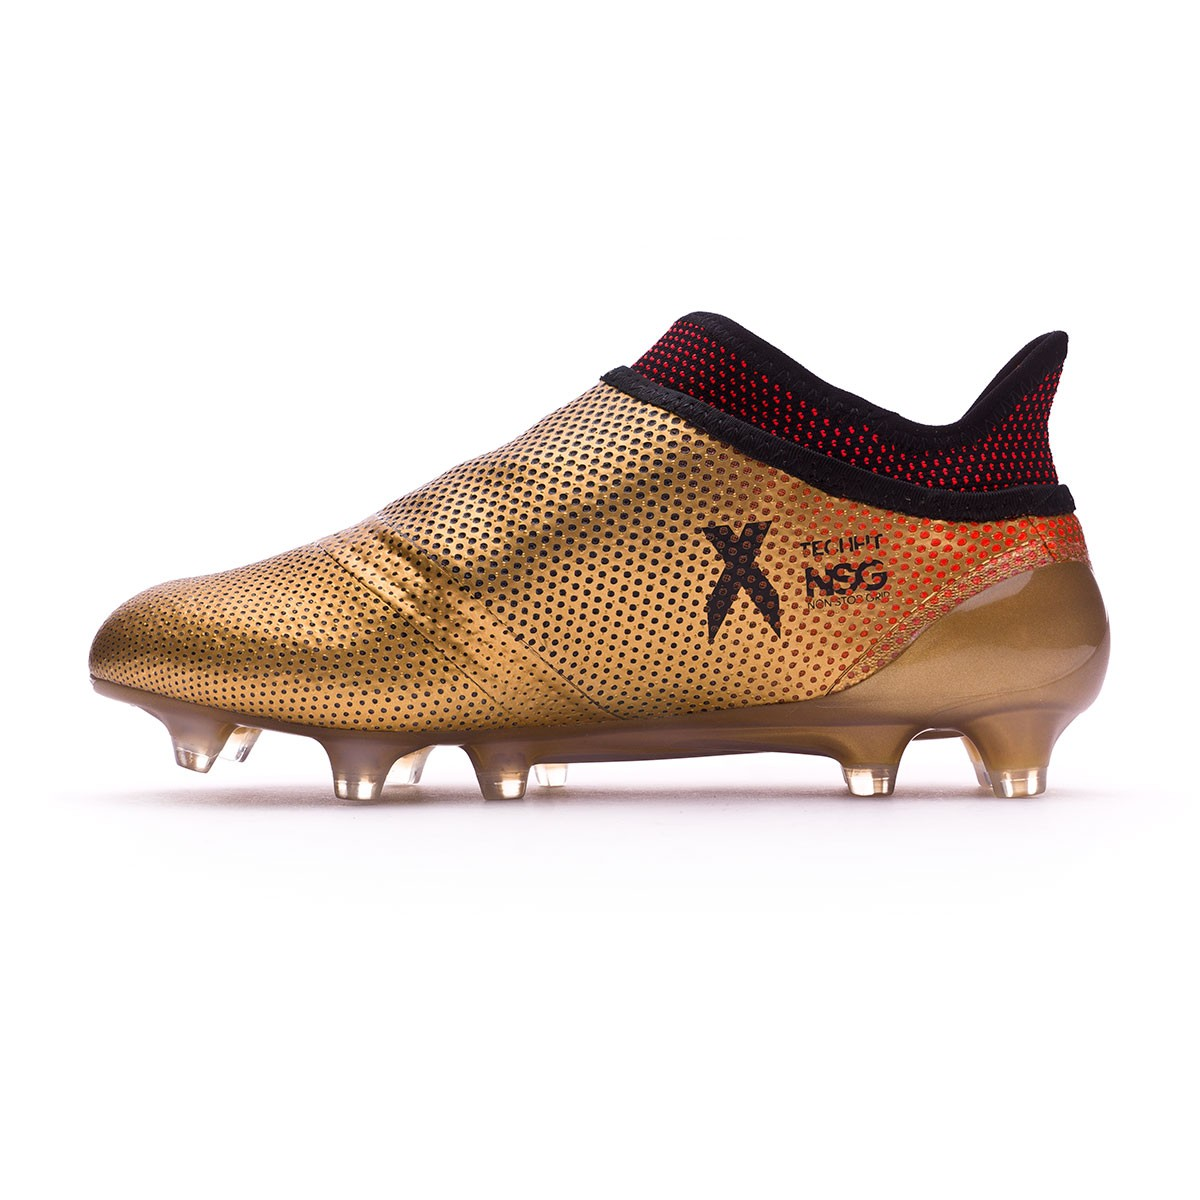 bd912168e3c Football Boots adidas X 17+ Purespeed FG Kids Tactile gold metallic-Core  black-Solar red - Football store Fútbol Emotion